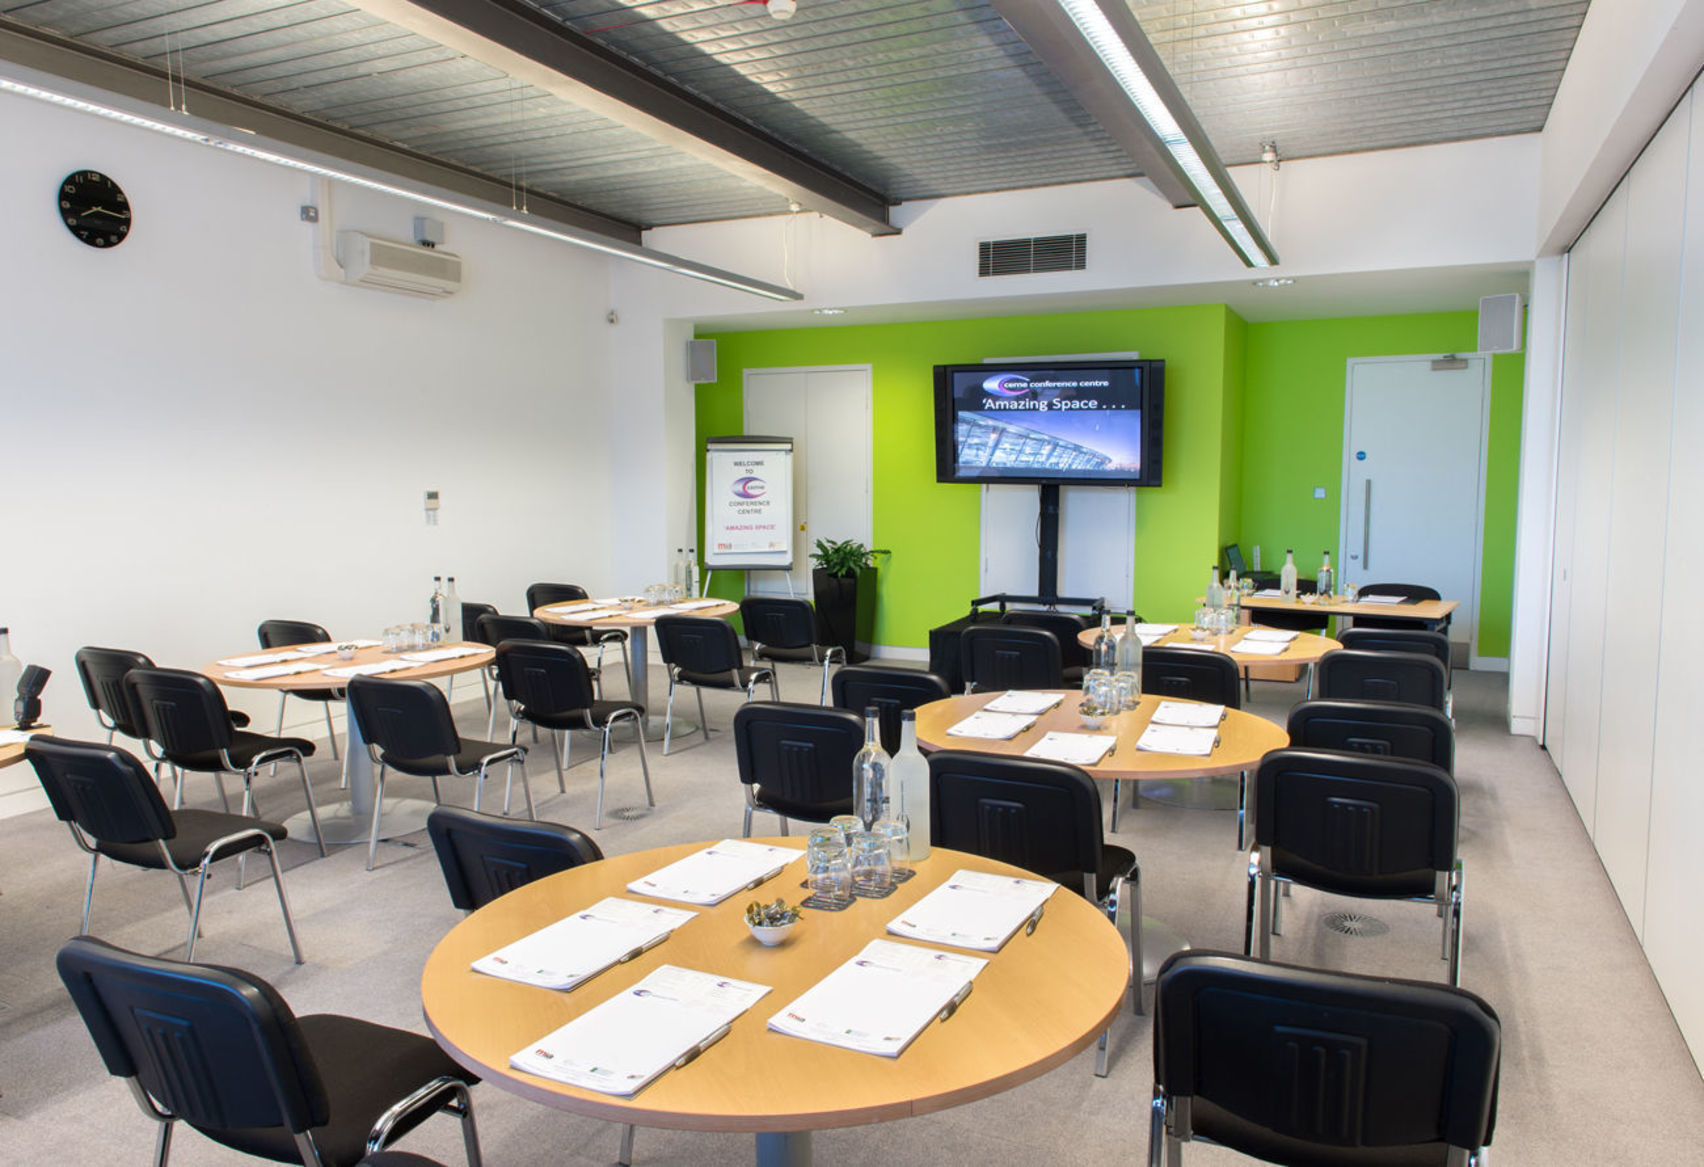 Large Adjoined Two Meeting Rooms (172/173), CEME